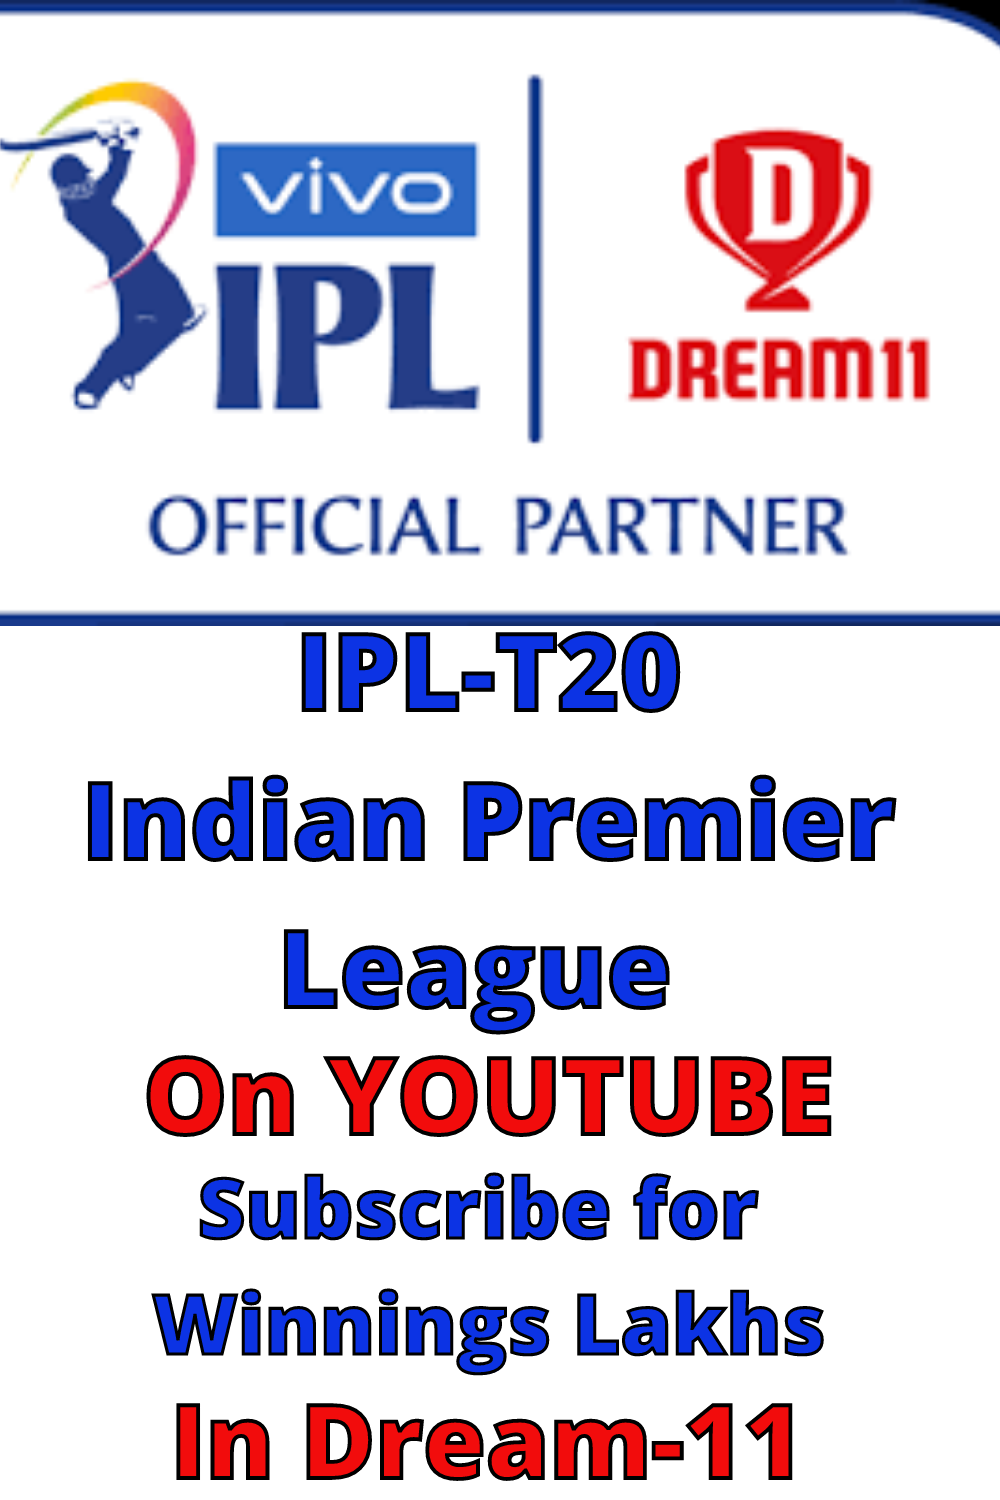 Dream11 IPL 2020 Matches and Analysis in 2020 Cricket